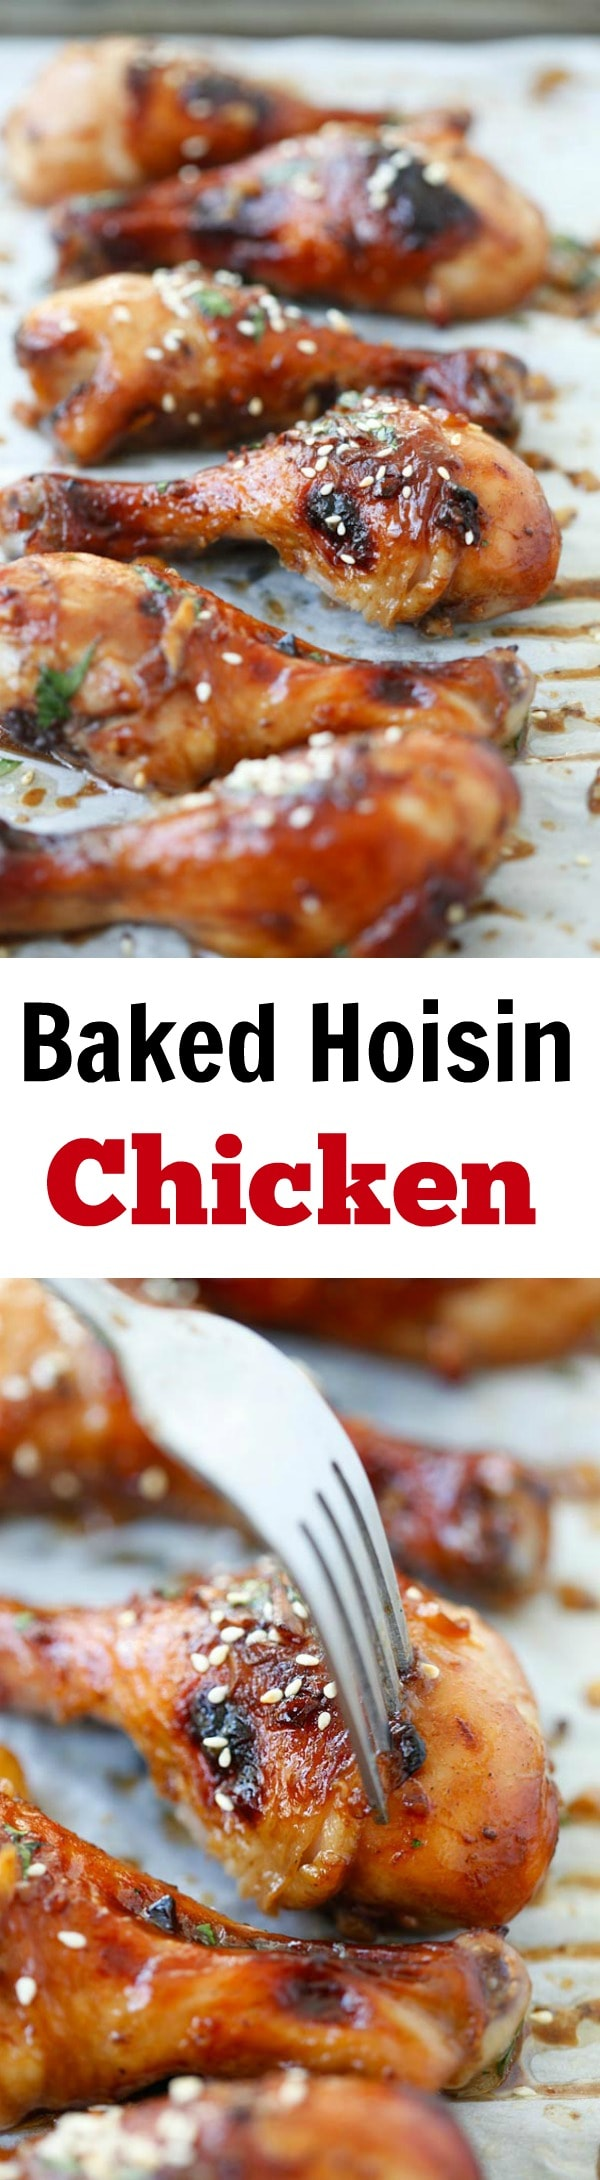 Baked Hoisin Chicken – moist, juicy and delicious chicken marinated with Hoisin sauce. Easy recipe that anyone can make at home | rasamalaysia.com